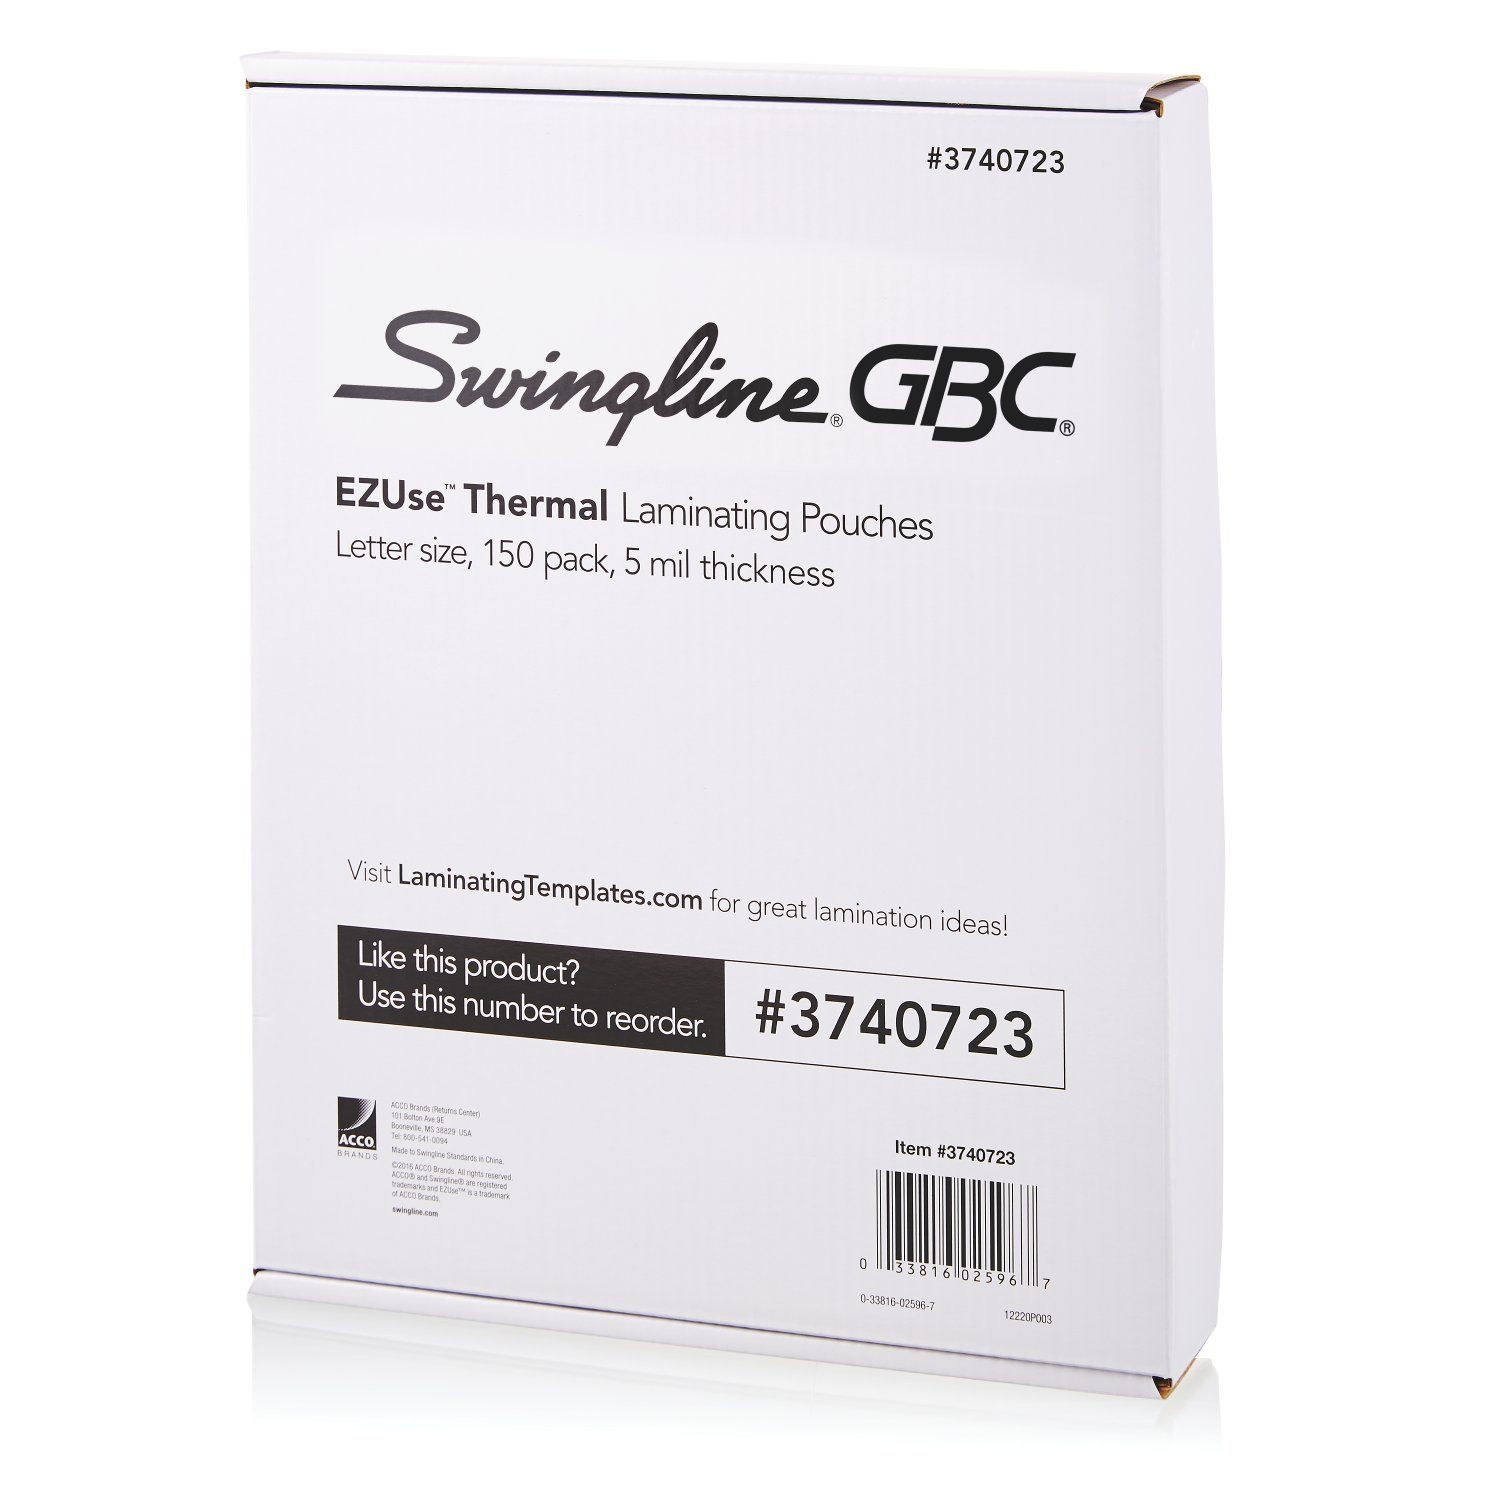 Swingline Gbc Thermal Laminating Sheets Pouches Letter Size 5 Mil Ezuse 150 Count 3740723 In 2020 Lettering Letter Size Glue Crafts